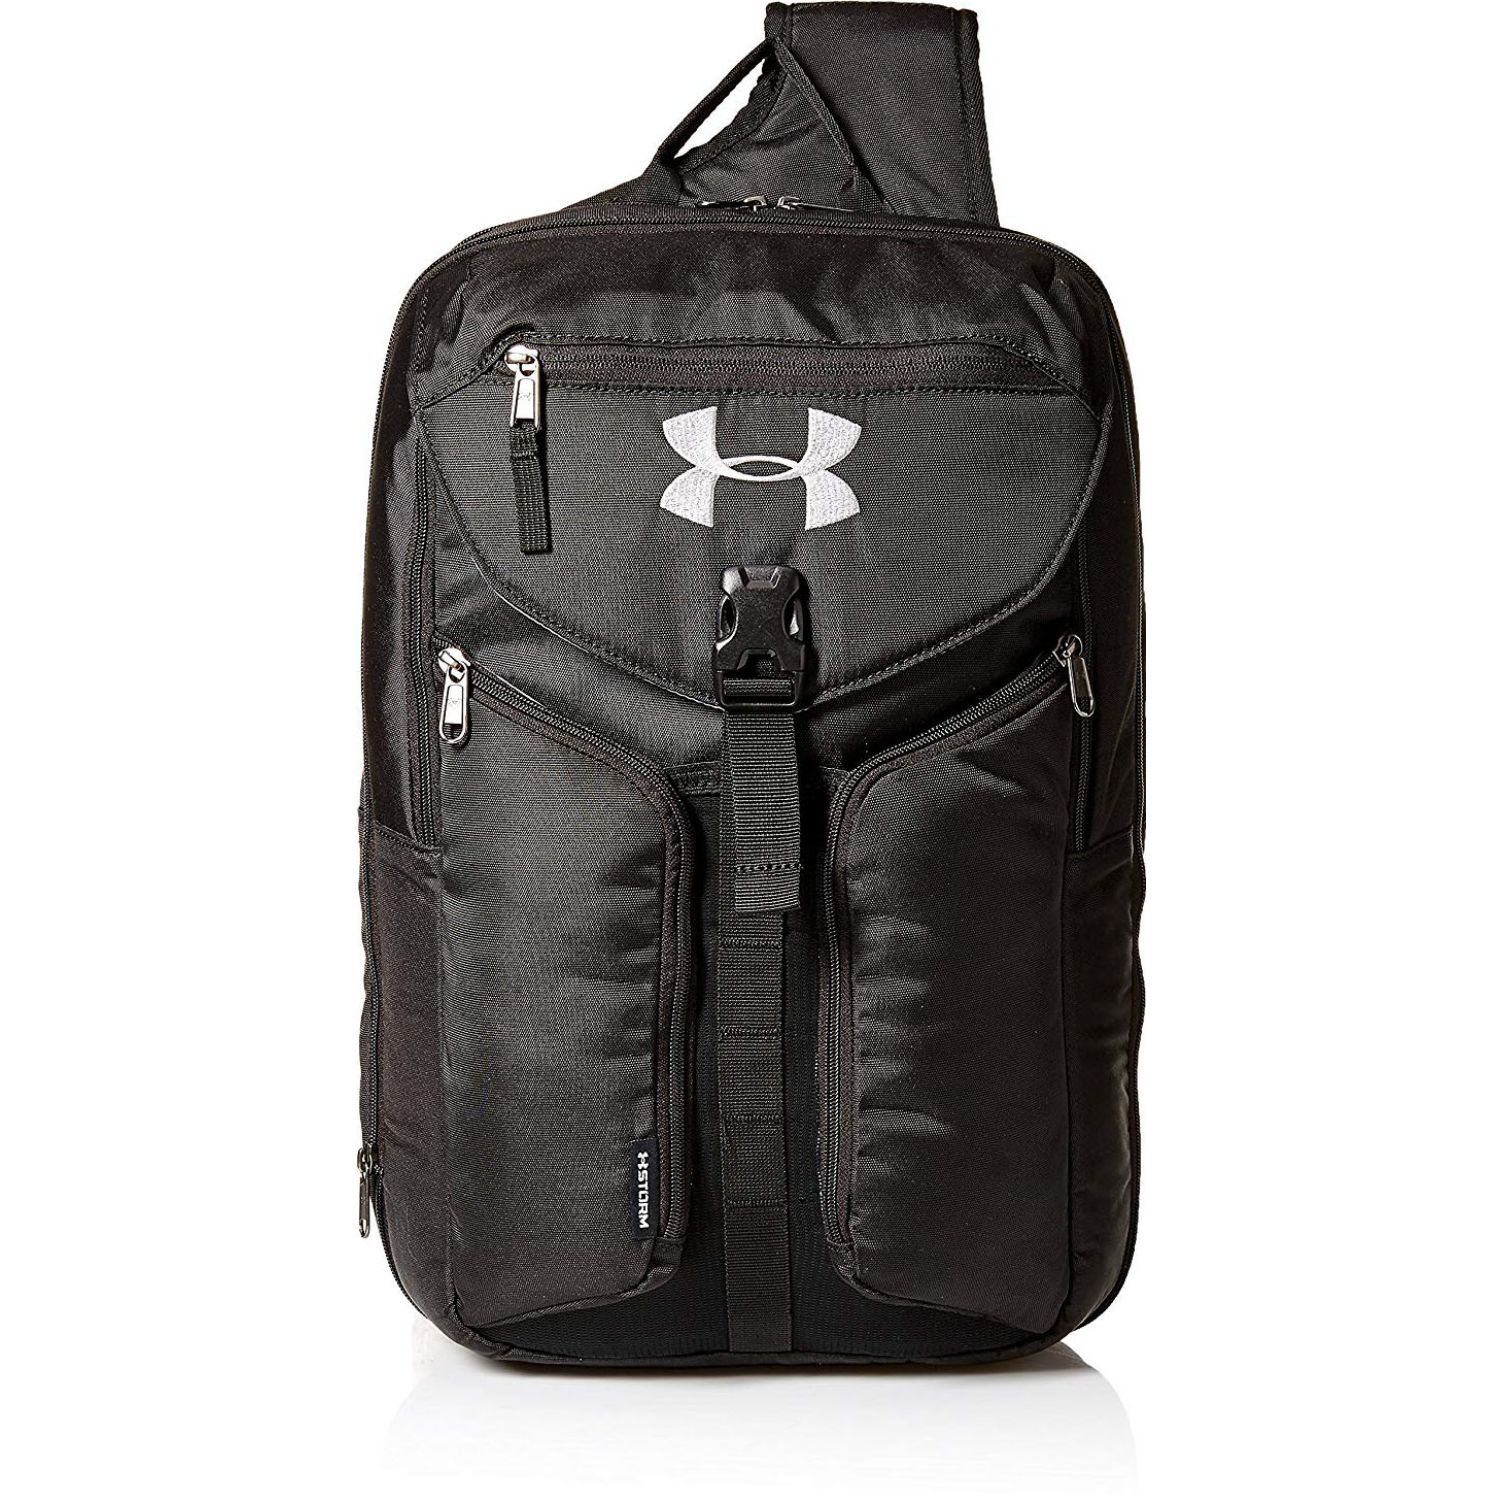 Under Armour Compel Sling 2.0 NEGRO / GRIS Mochilas Multipropósitos